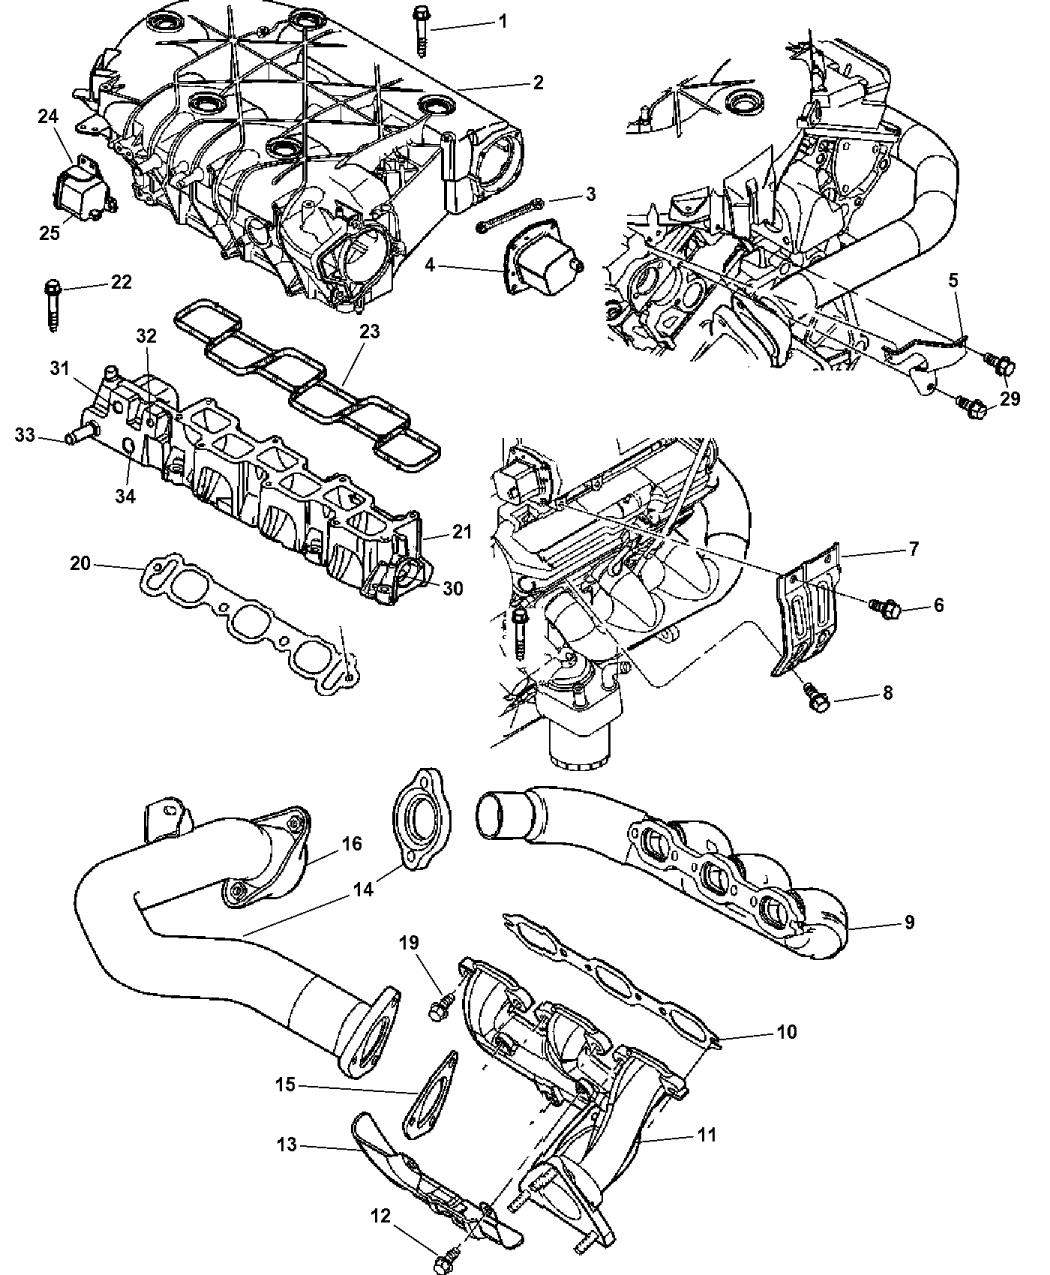 2004 Chrysler Pacifica Manifold Intake Exhaust Engine Diagram